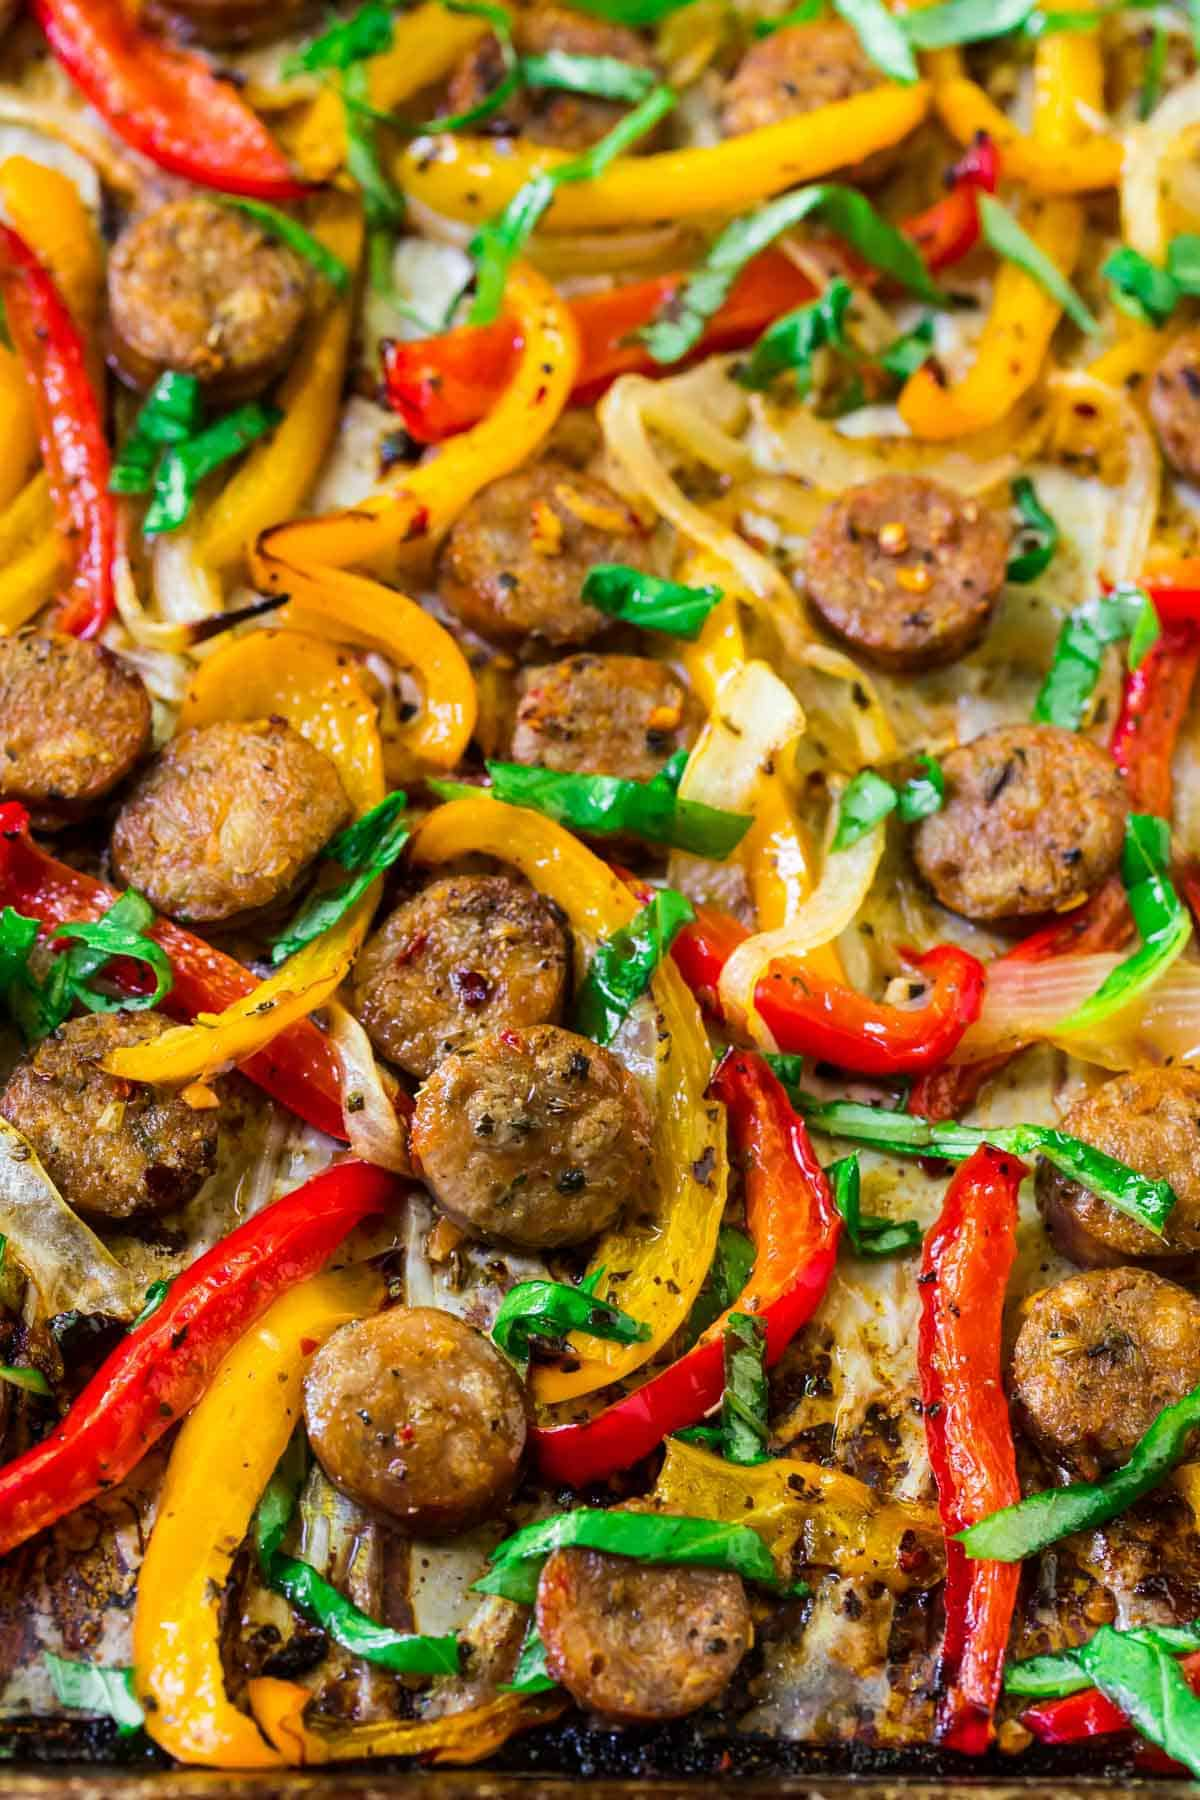 Italian Sausage and Peppers in the oven. An easy, healthy, and flavorful Italian sausage recipe! Great for sweet or hot Italian sausage.